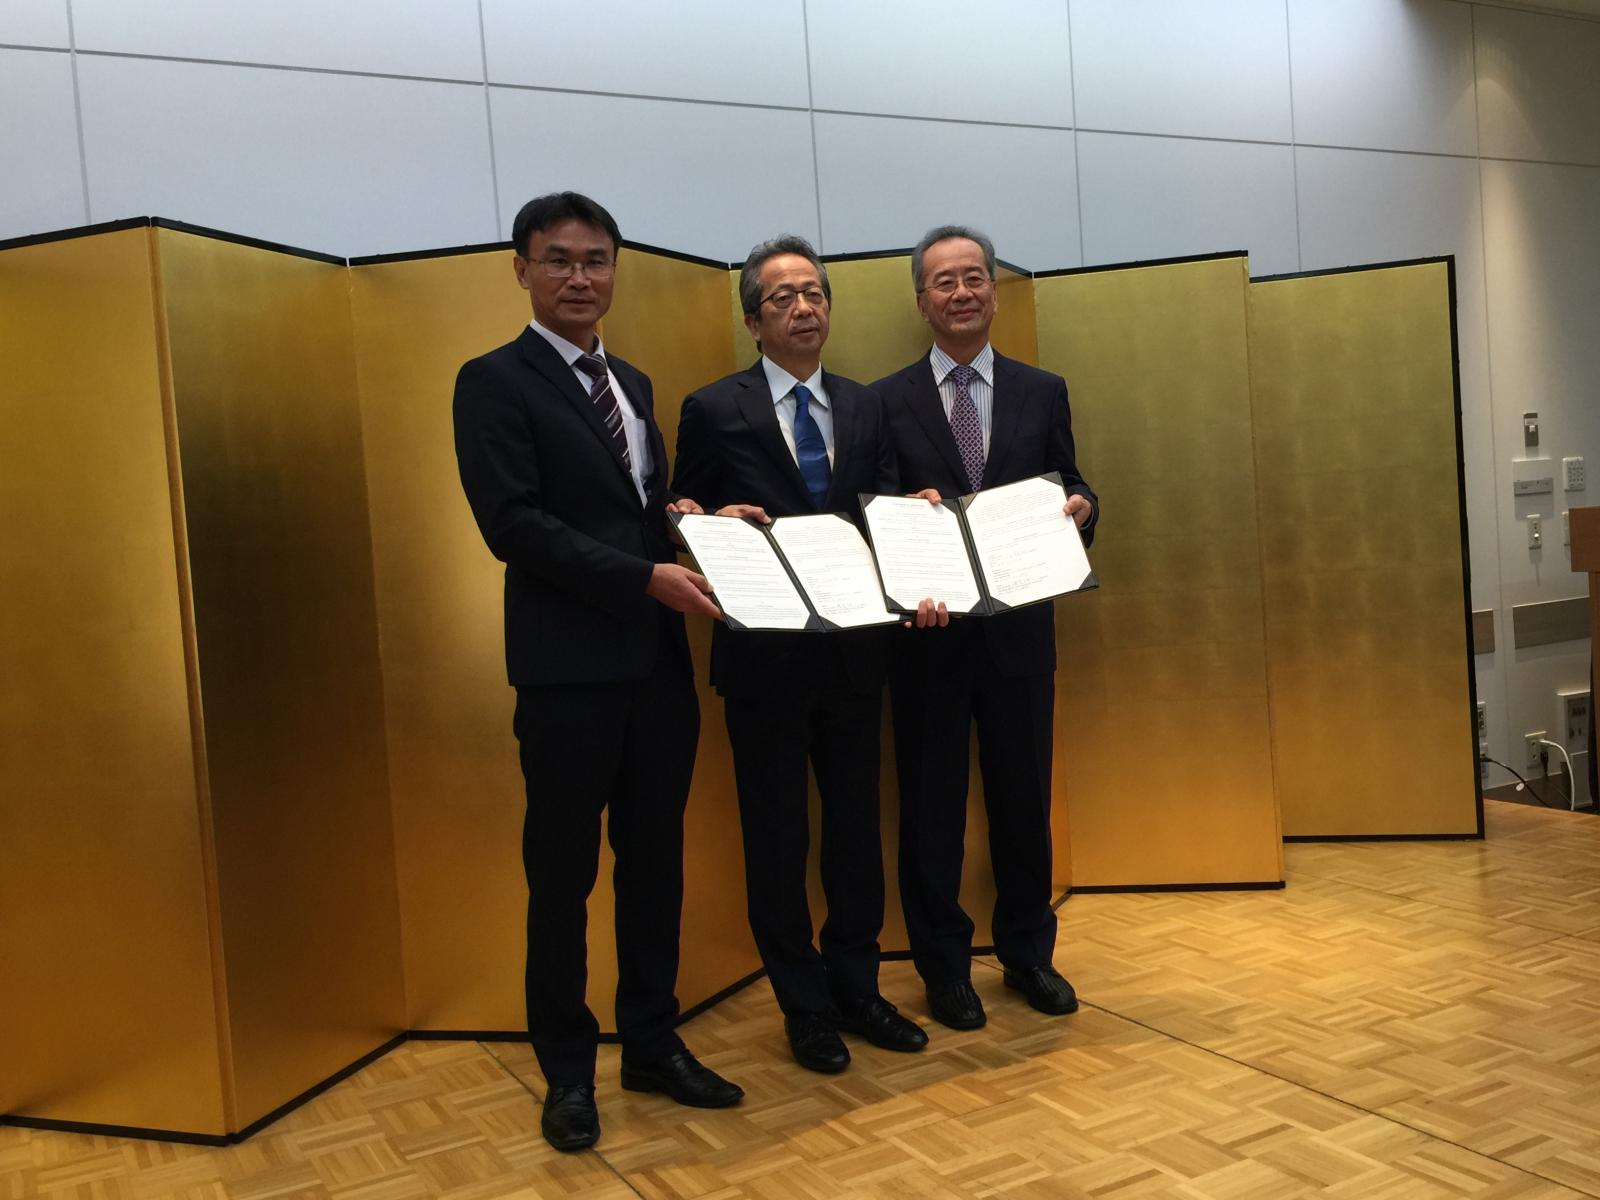 Taiwan's government is happy to see MITAGRI sign a Memorandum of Cooperation with the Farmind Corporation, a major sales channel into Japan, and they believe that we will soon see even more exports of premium Taiwan agriproducts to Japan, thereby raising farmers' incomes.